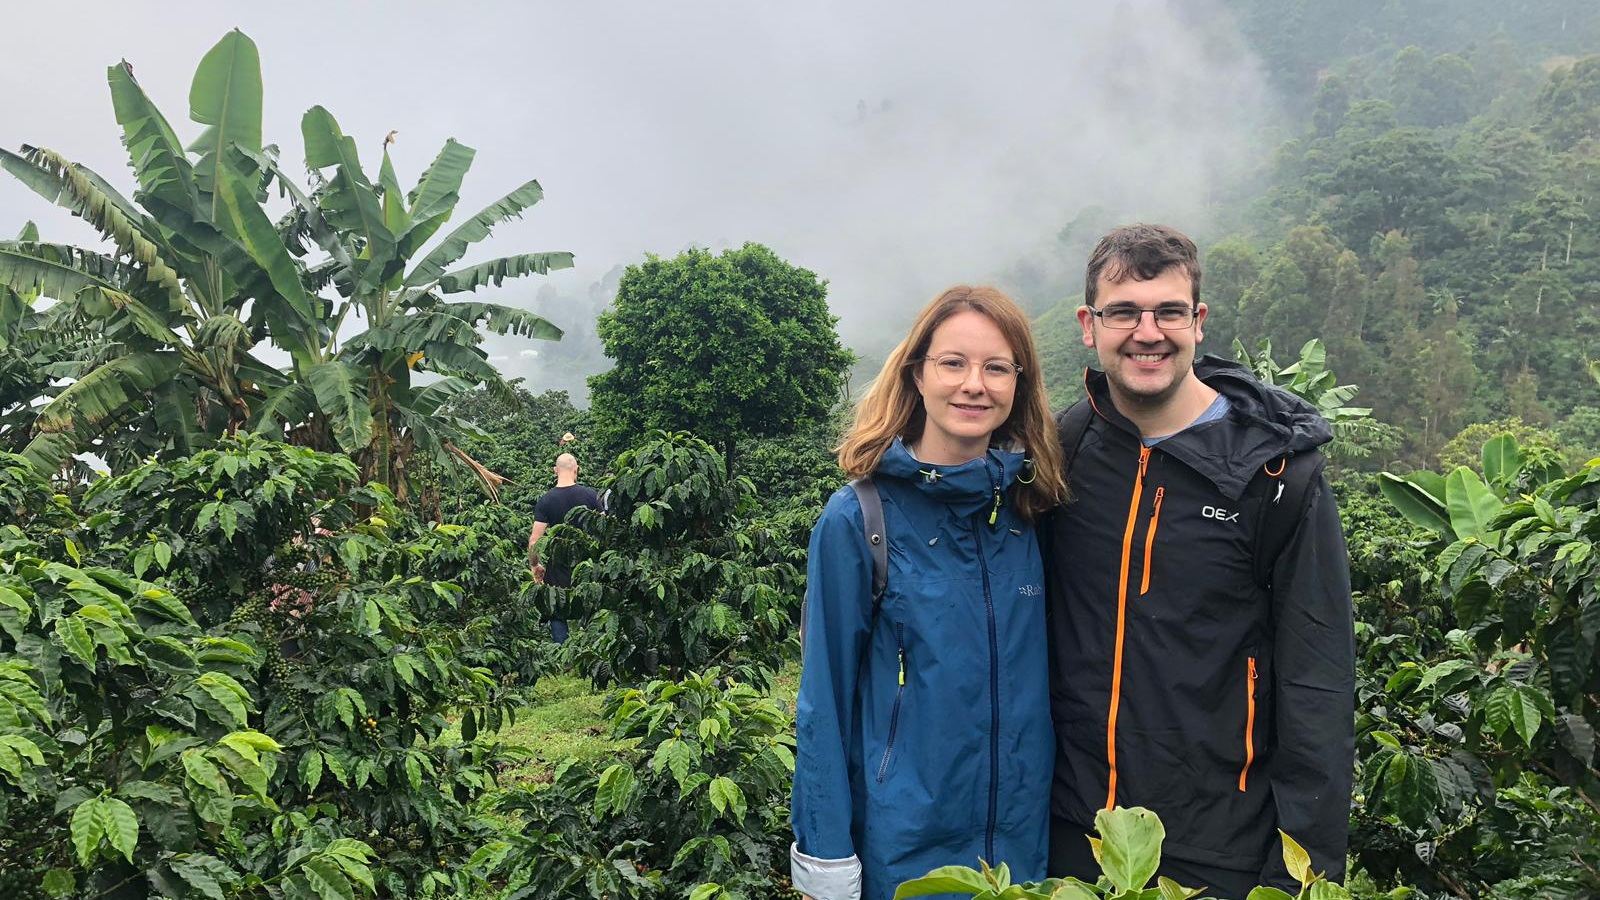 Lincoln & York Colombia origin trip 2019